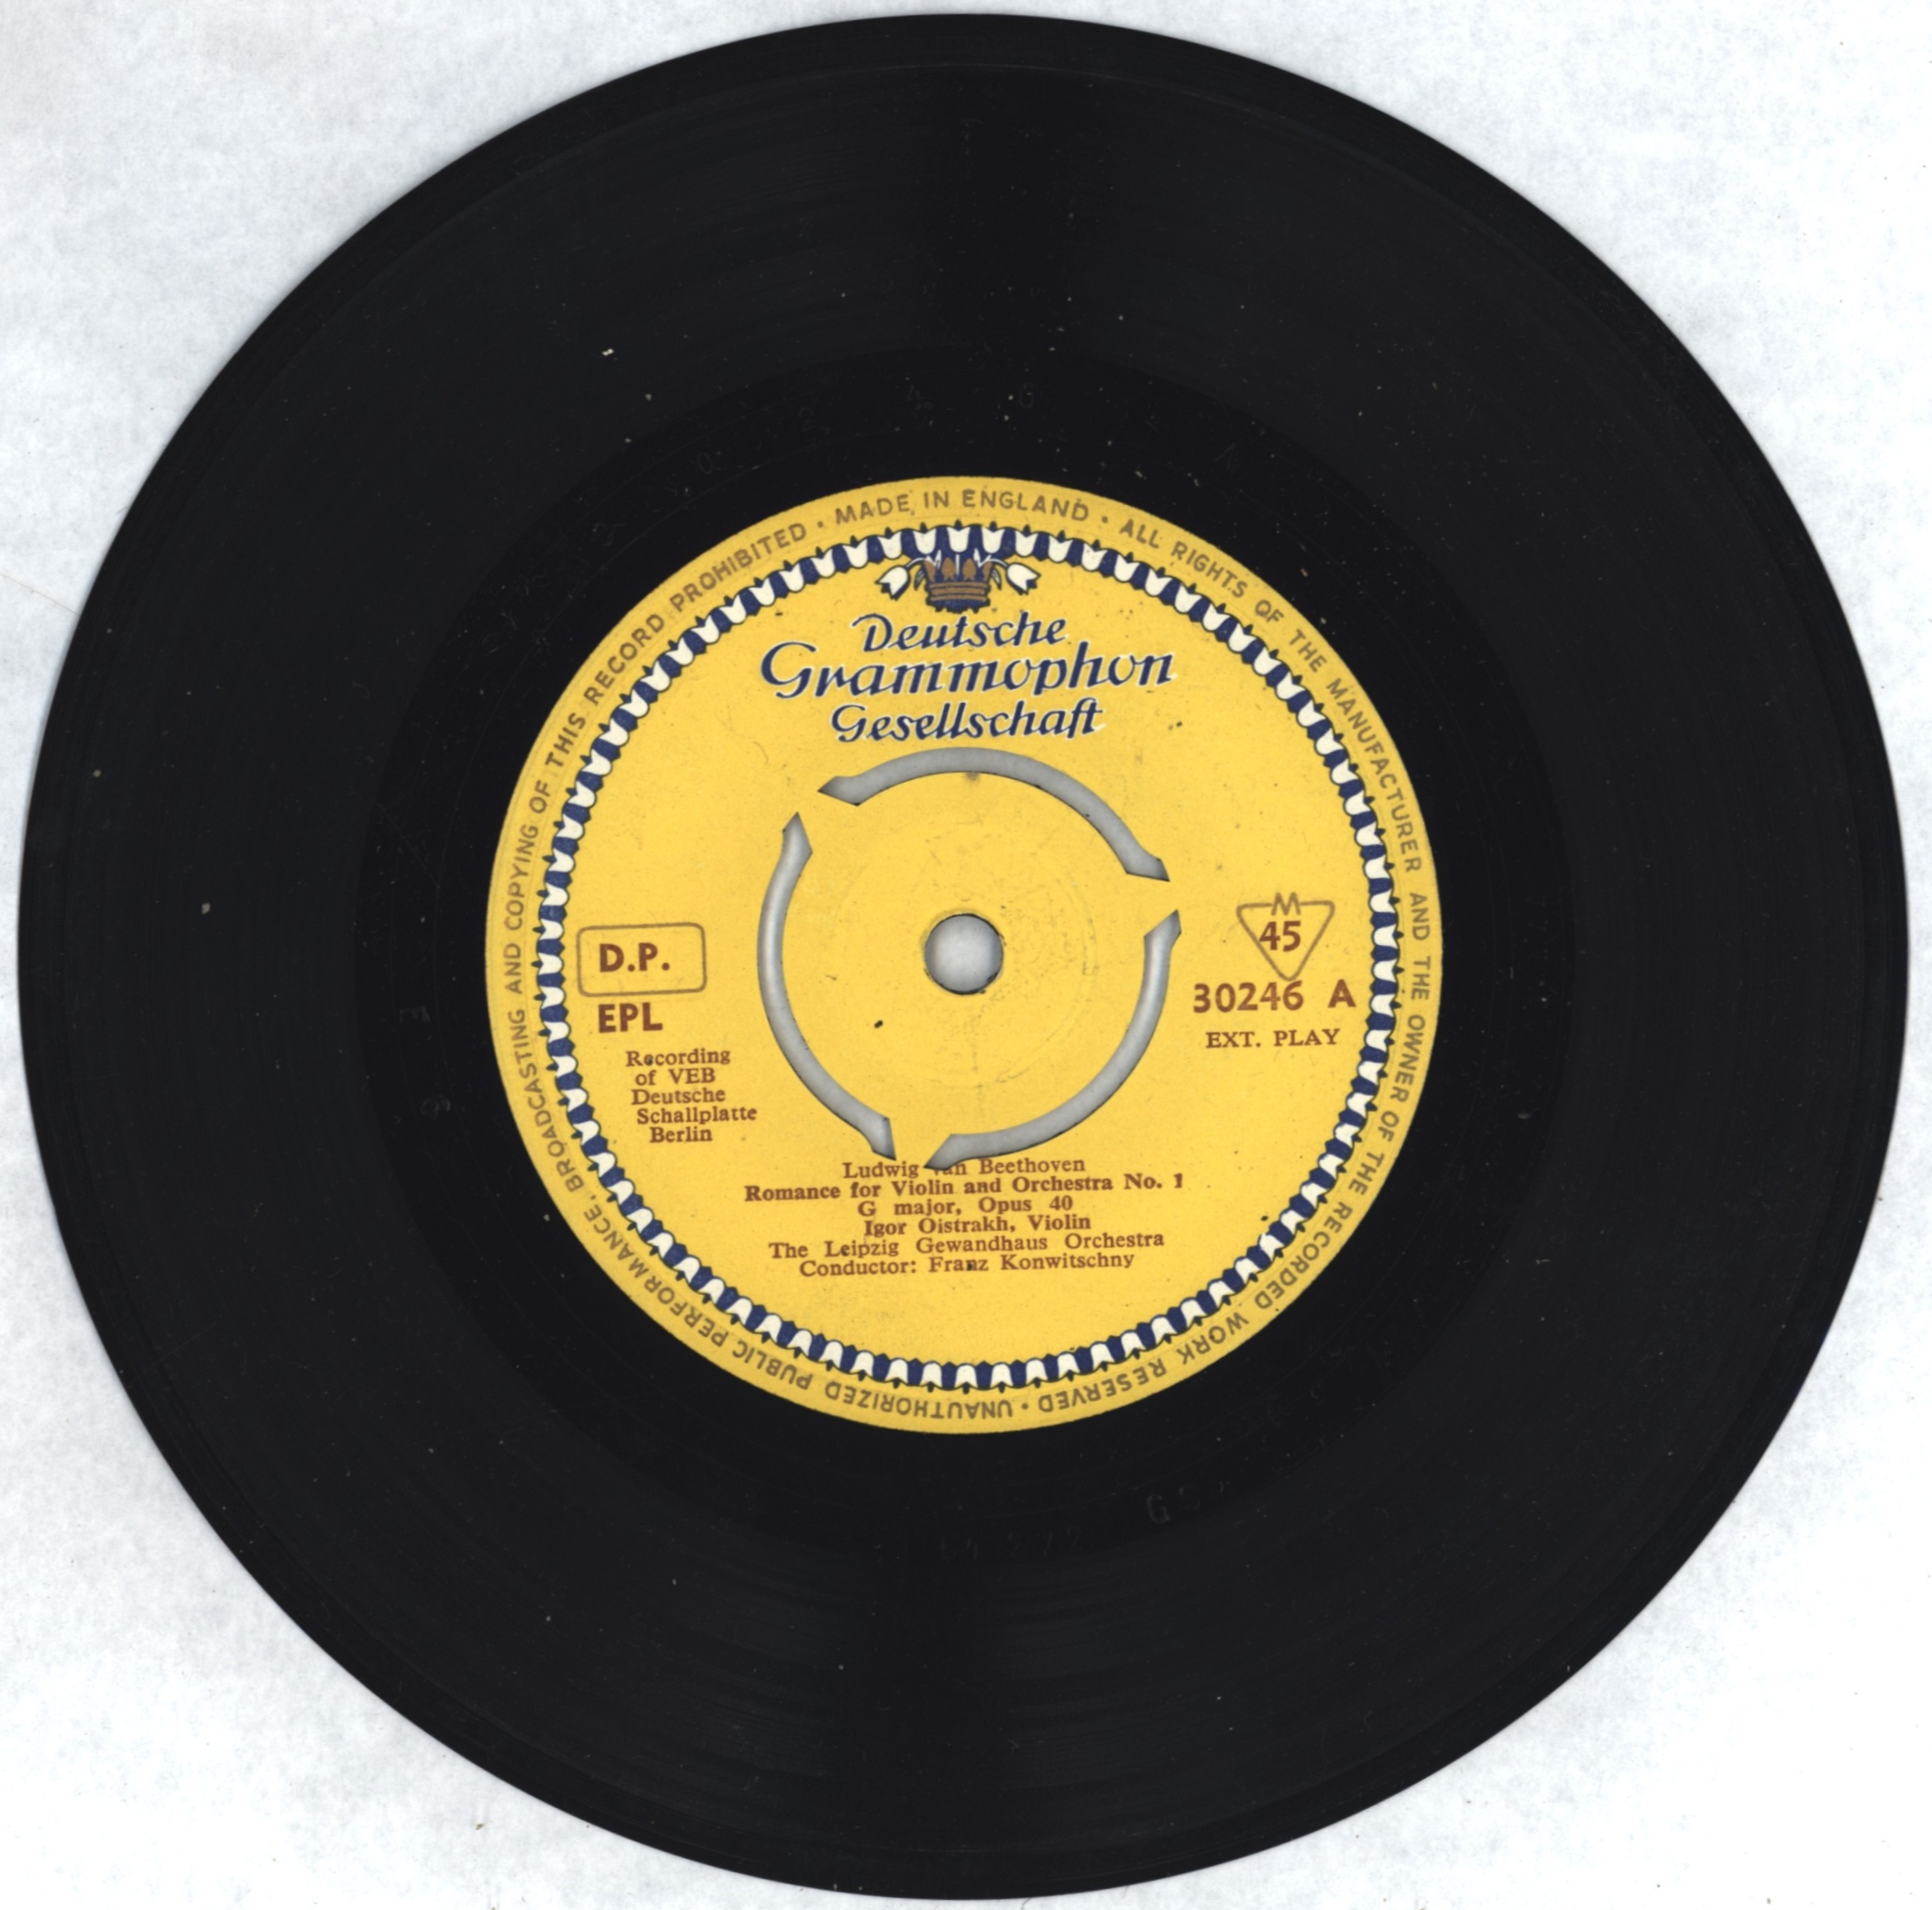 From Forster's LP collection